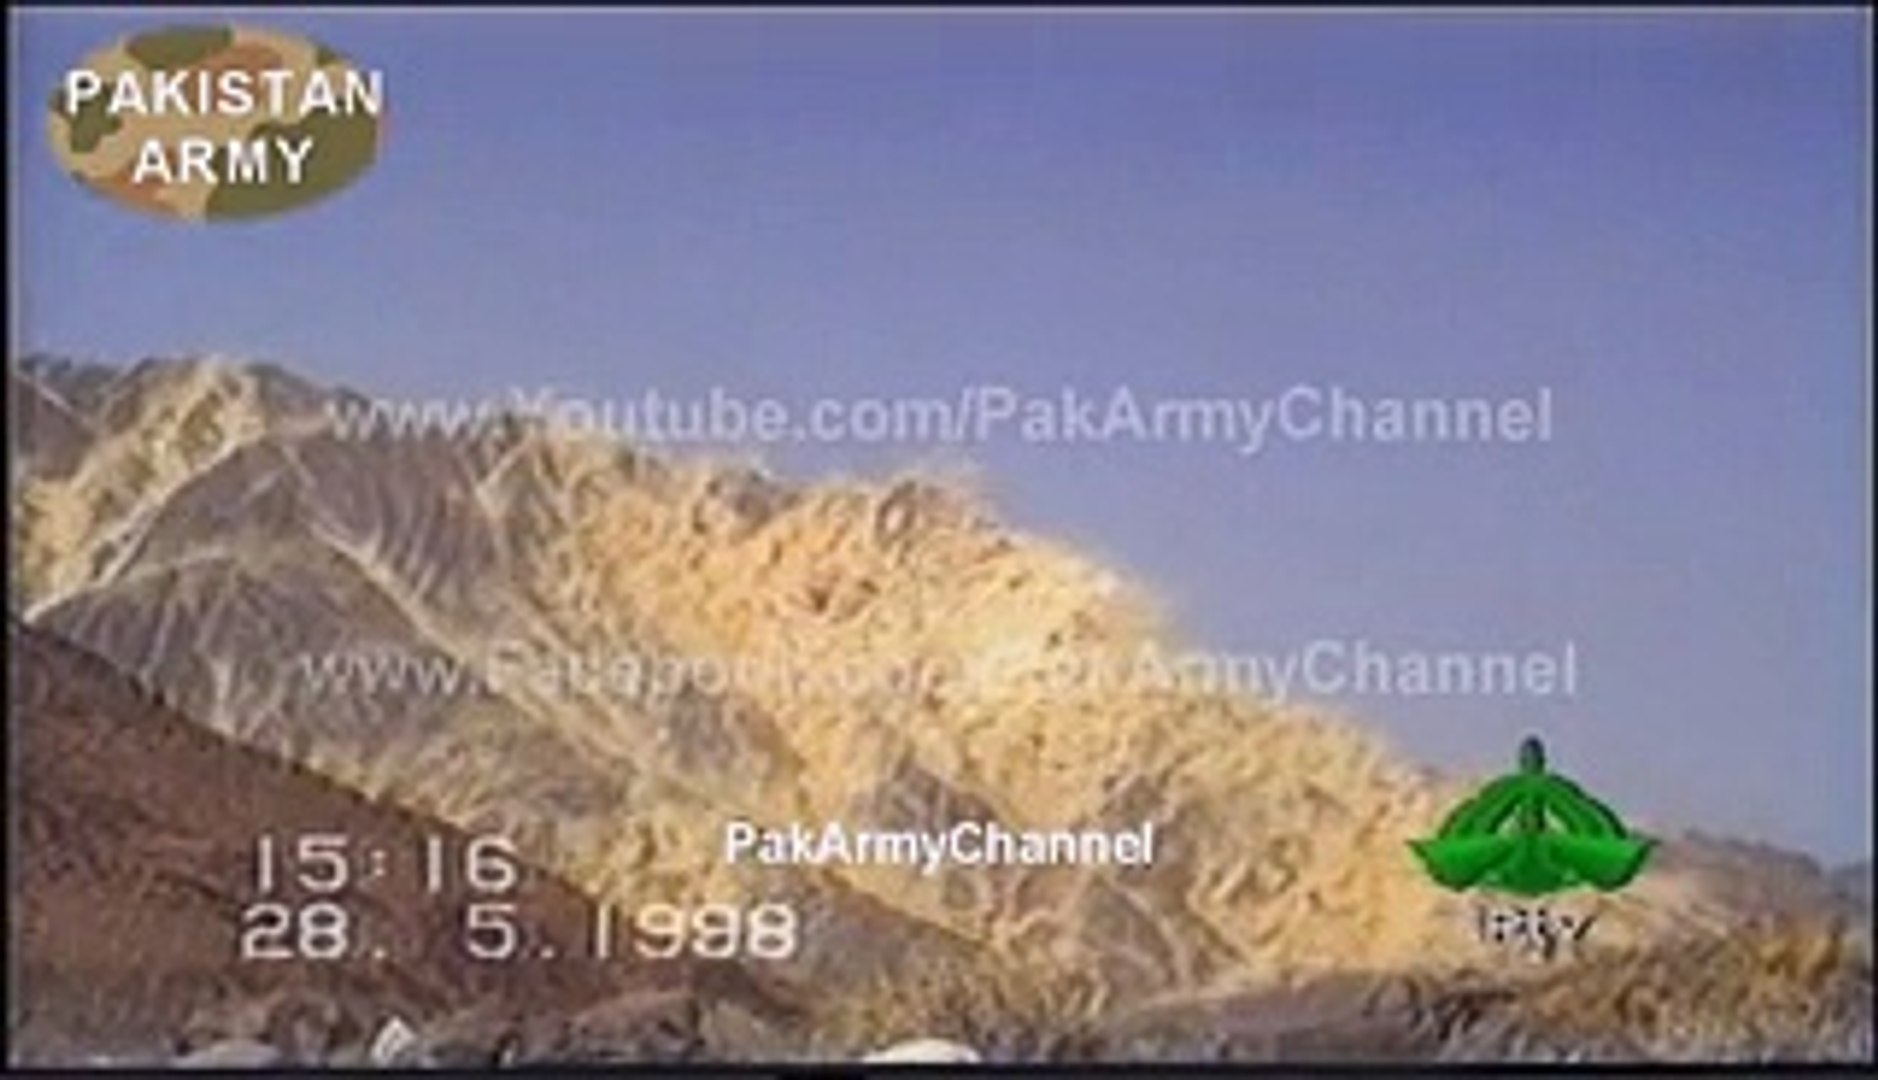 Pakistan's First Nuclear Test - May 28, 1998 (Youm-e-Takbeer) - Video  Dailymotion